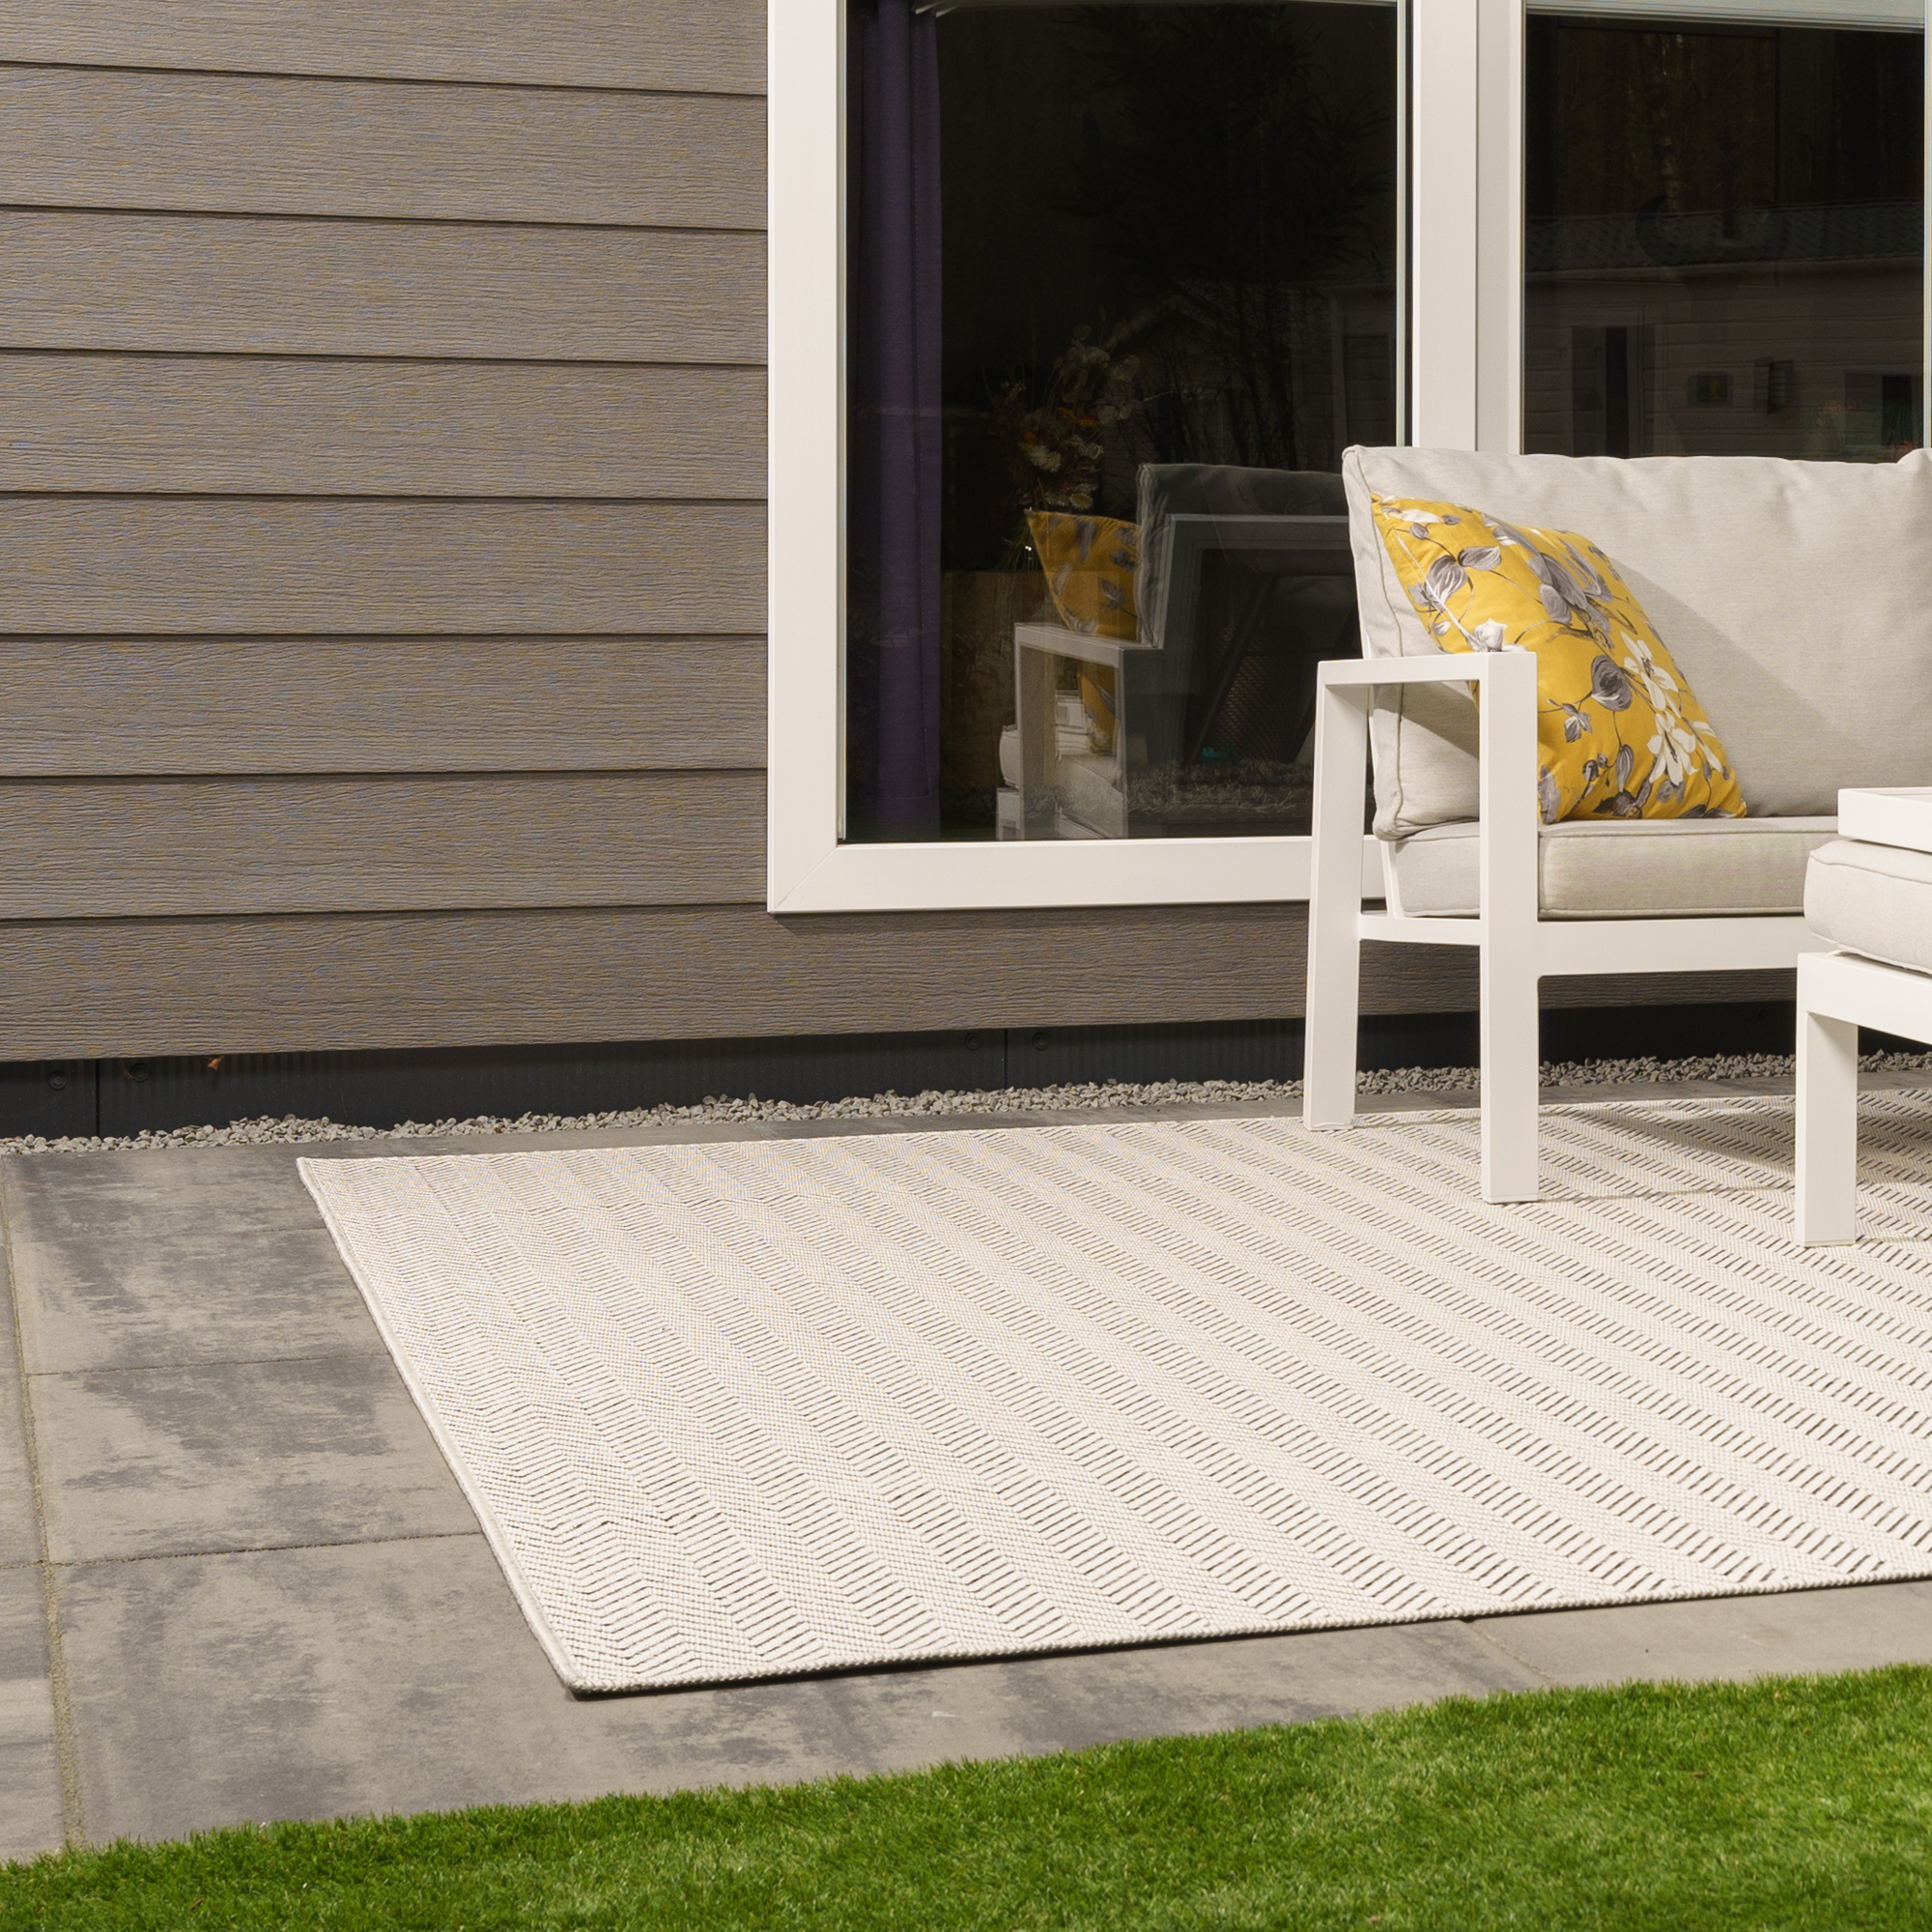 Vloerkleed Xilento Outdoor 4027-12